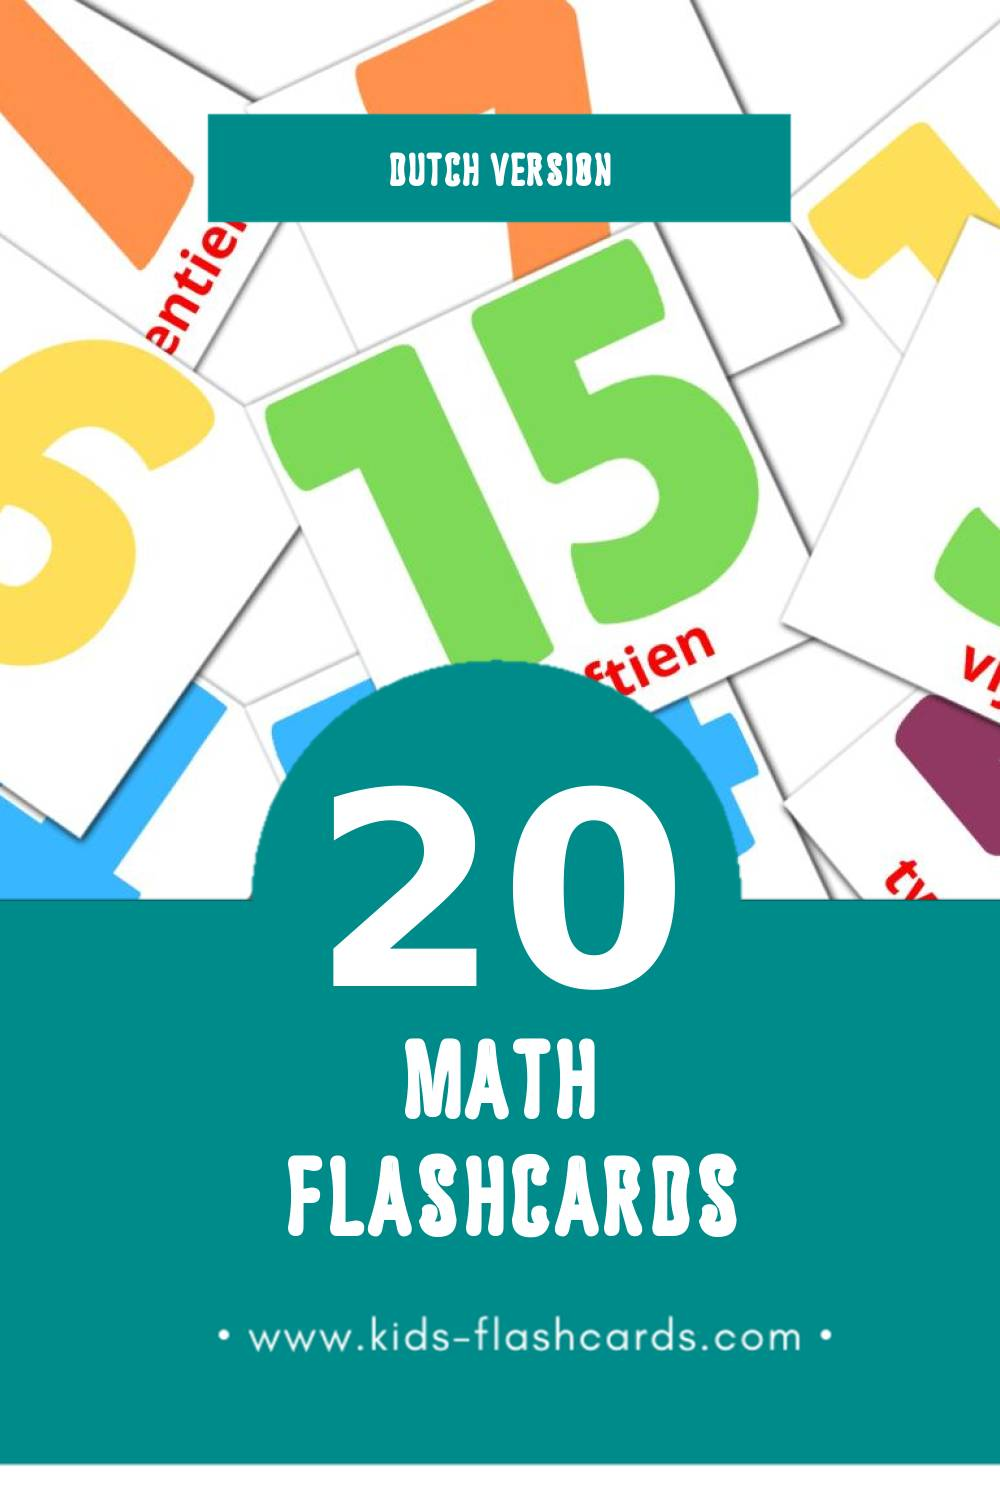 Visual none Flashcards for Toddlers (20 cards in Dutch)